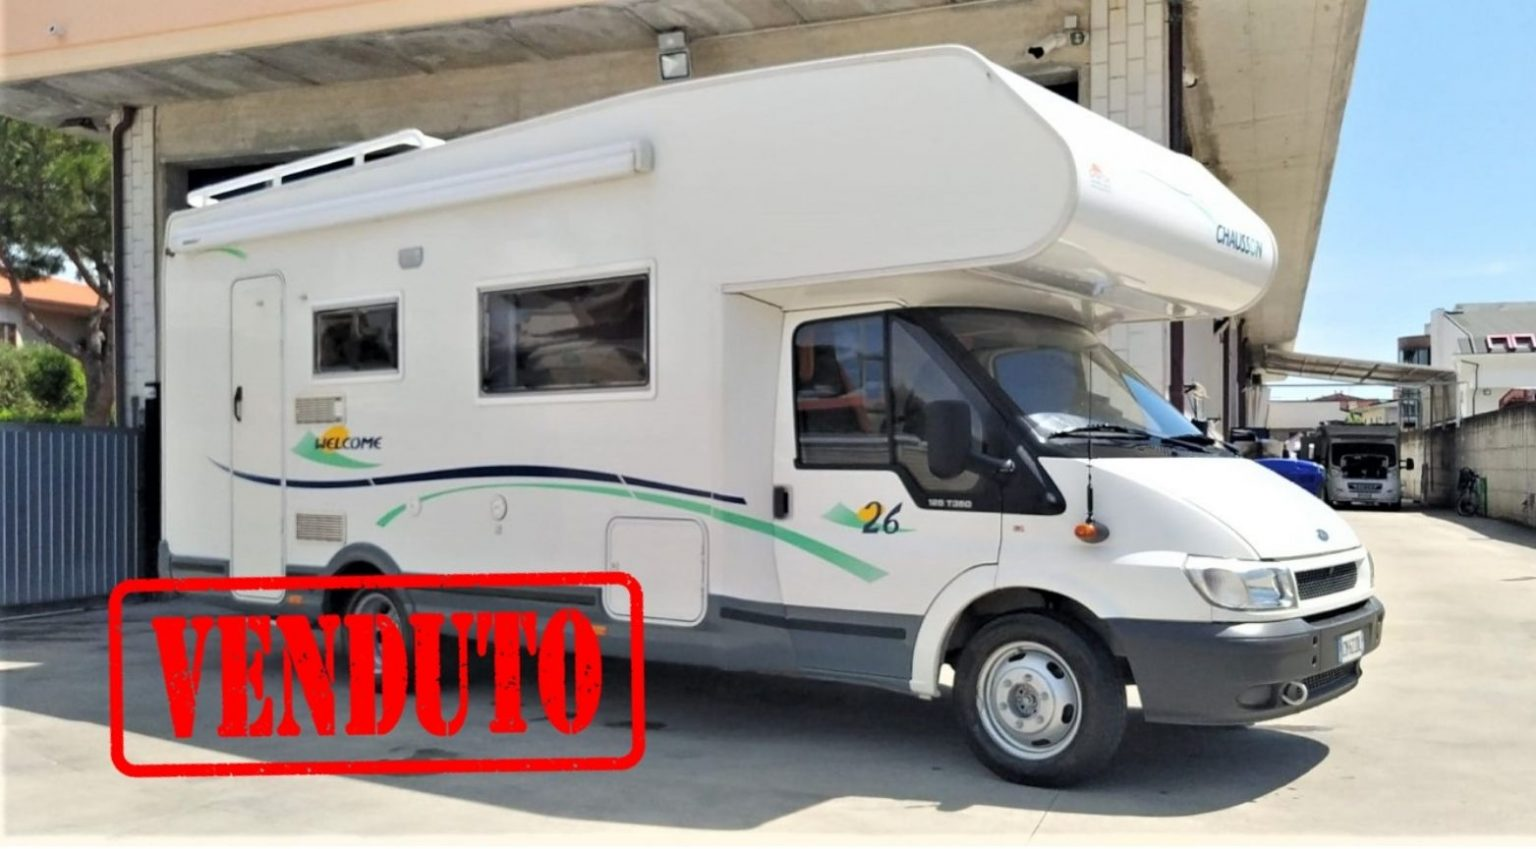 CHAUSSON WELCOME 26 (4)